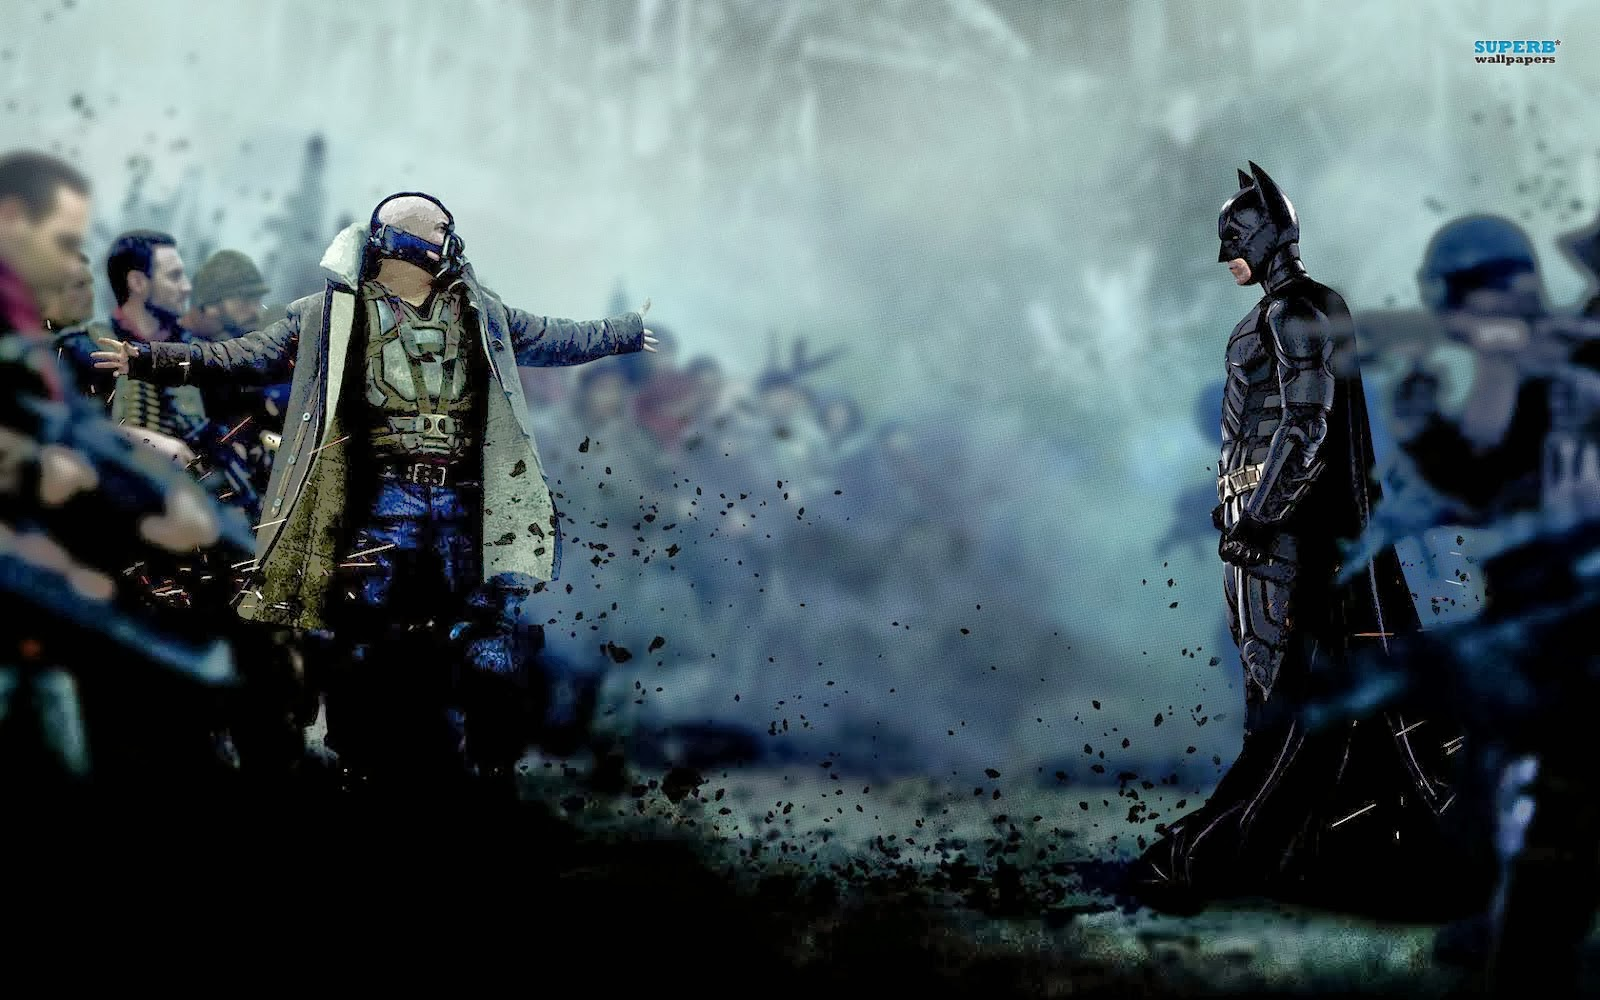 BANE AND BATMAN THE DARK KNIGHT RISES FREE WALLPAPERS - batman hd